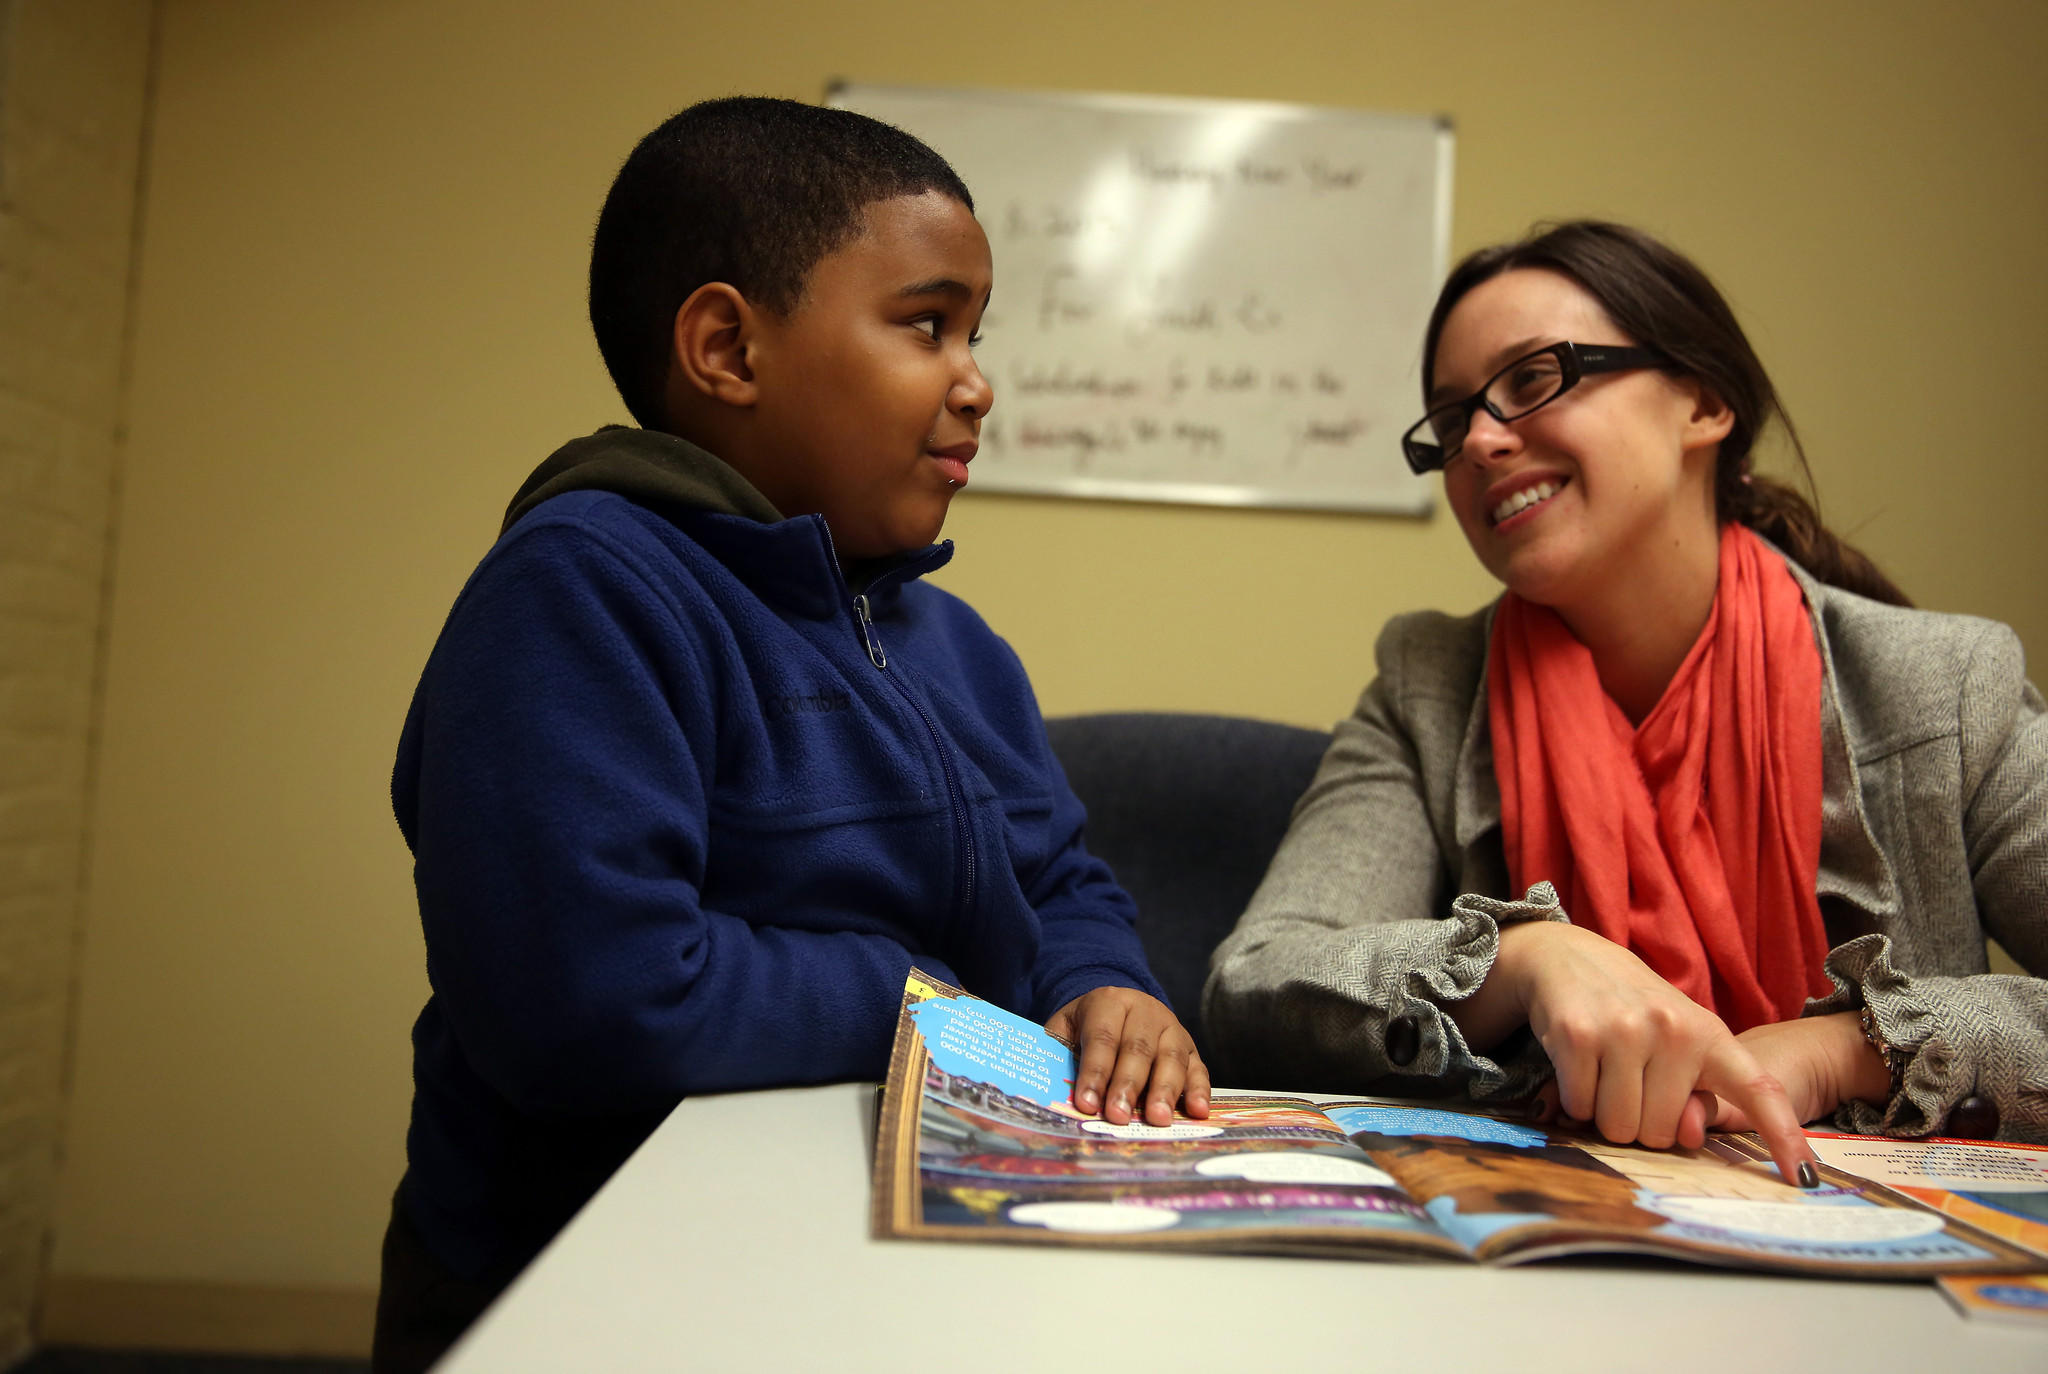 Kelly Powers tutors A.J. McKennie, 6, as part of the Declan's 52 program at Horizons for Youth.